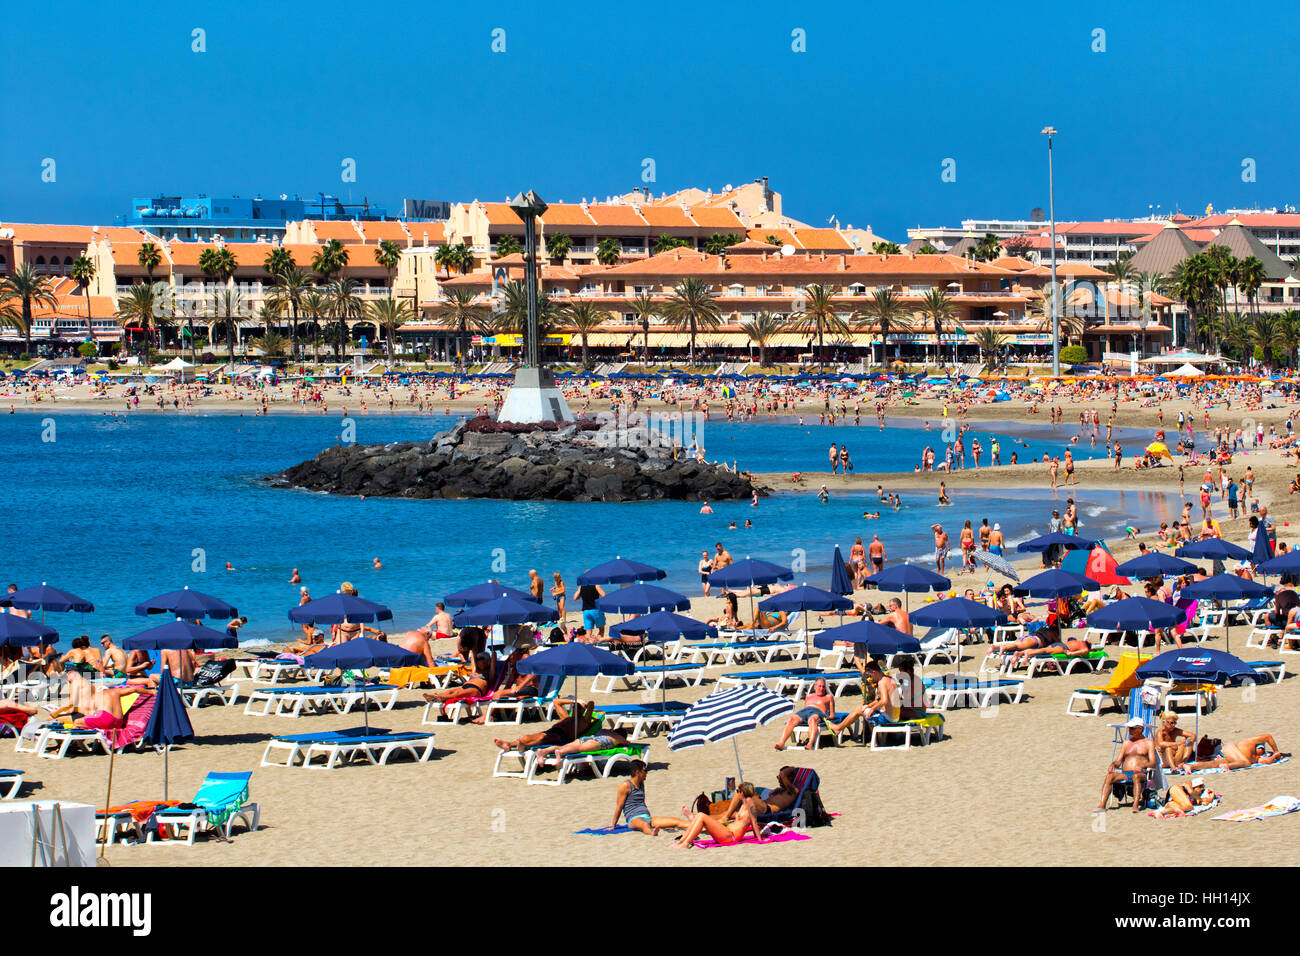 Los Christianos beach in Tenerife, Canary islands - Stock Image